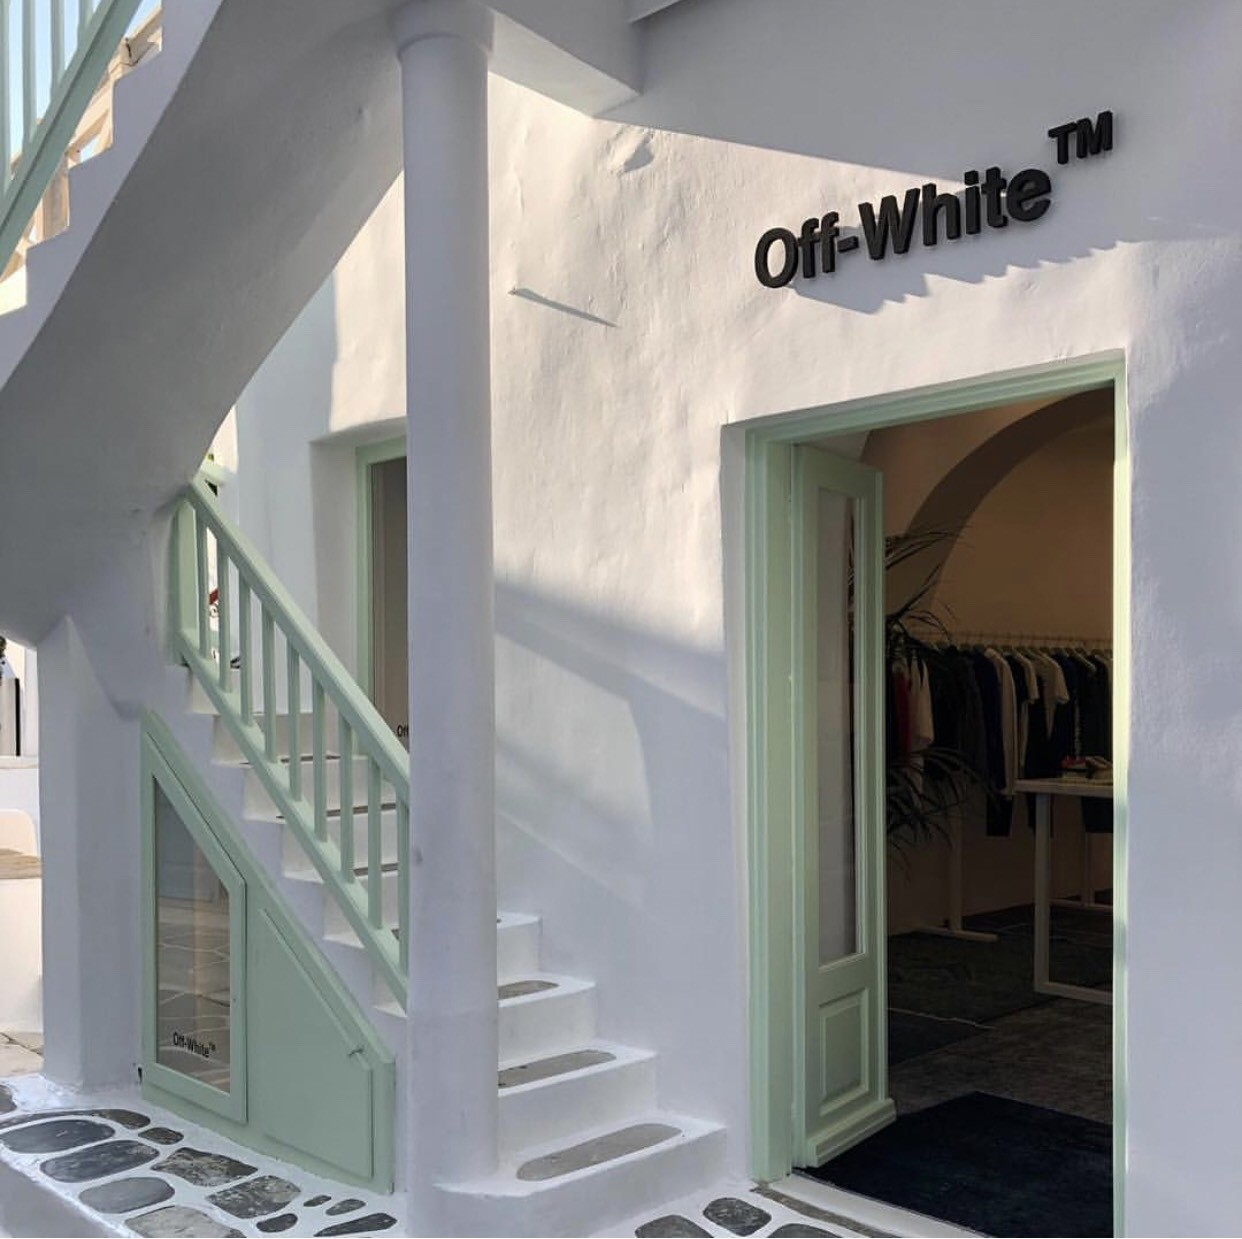 ▲Off-White「HOME」家居系列。(圖/翻攝自IG@off___white___mykonos、Off-White、品牌提供)